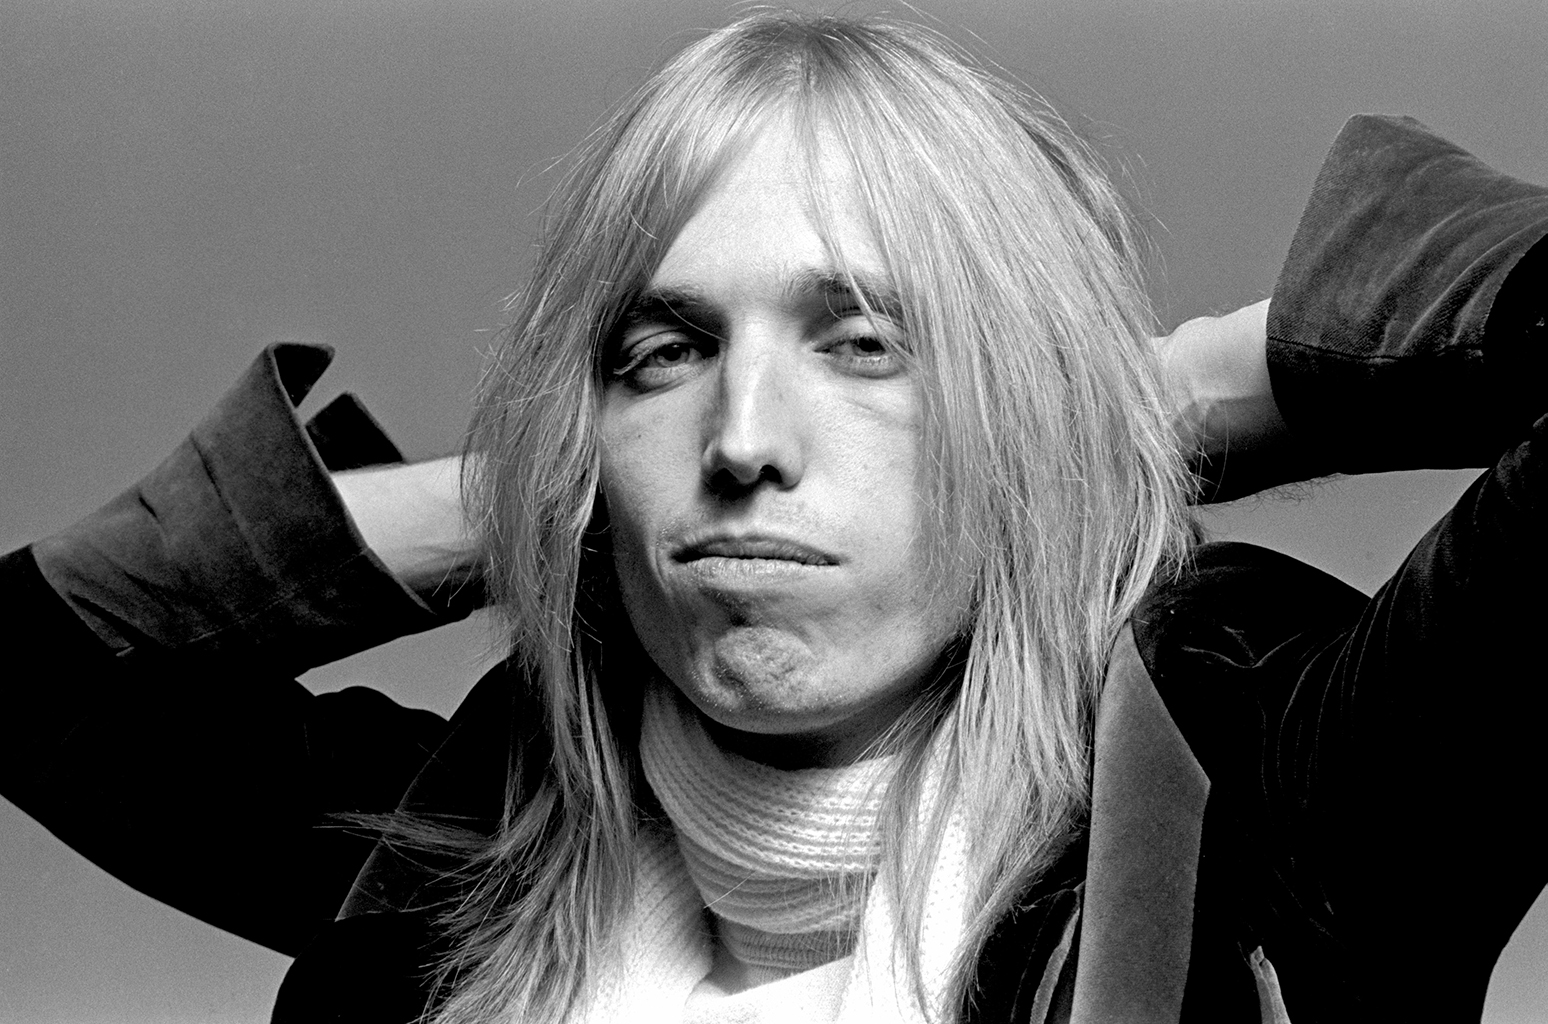 NEW YORK: Tom Petty from Tom Petty and the Heartbreakers posed in New York in 1976 (Photo by Richard E. Aaron/Redferns)